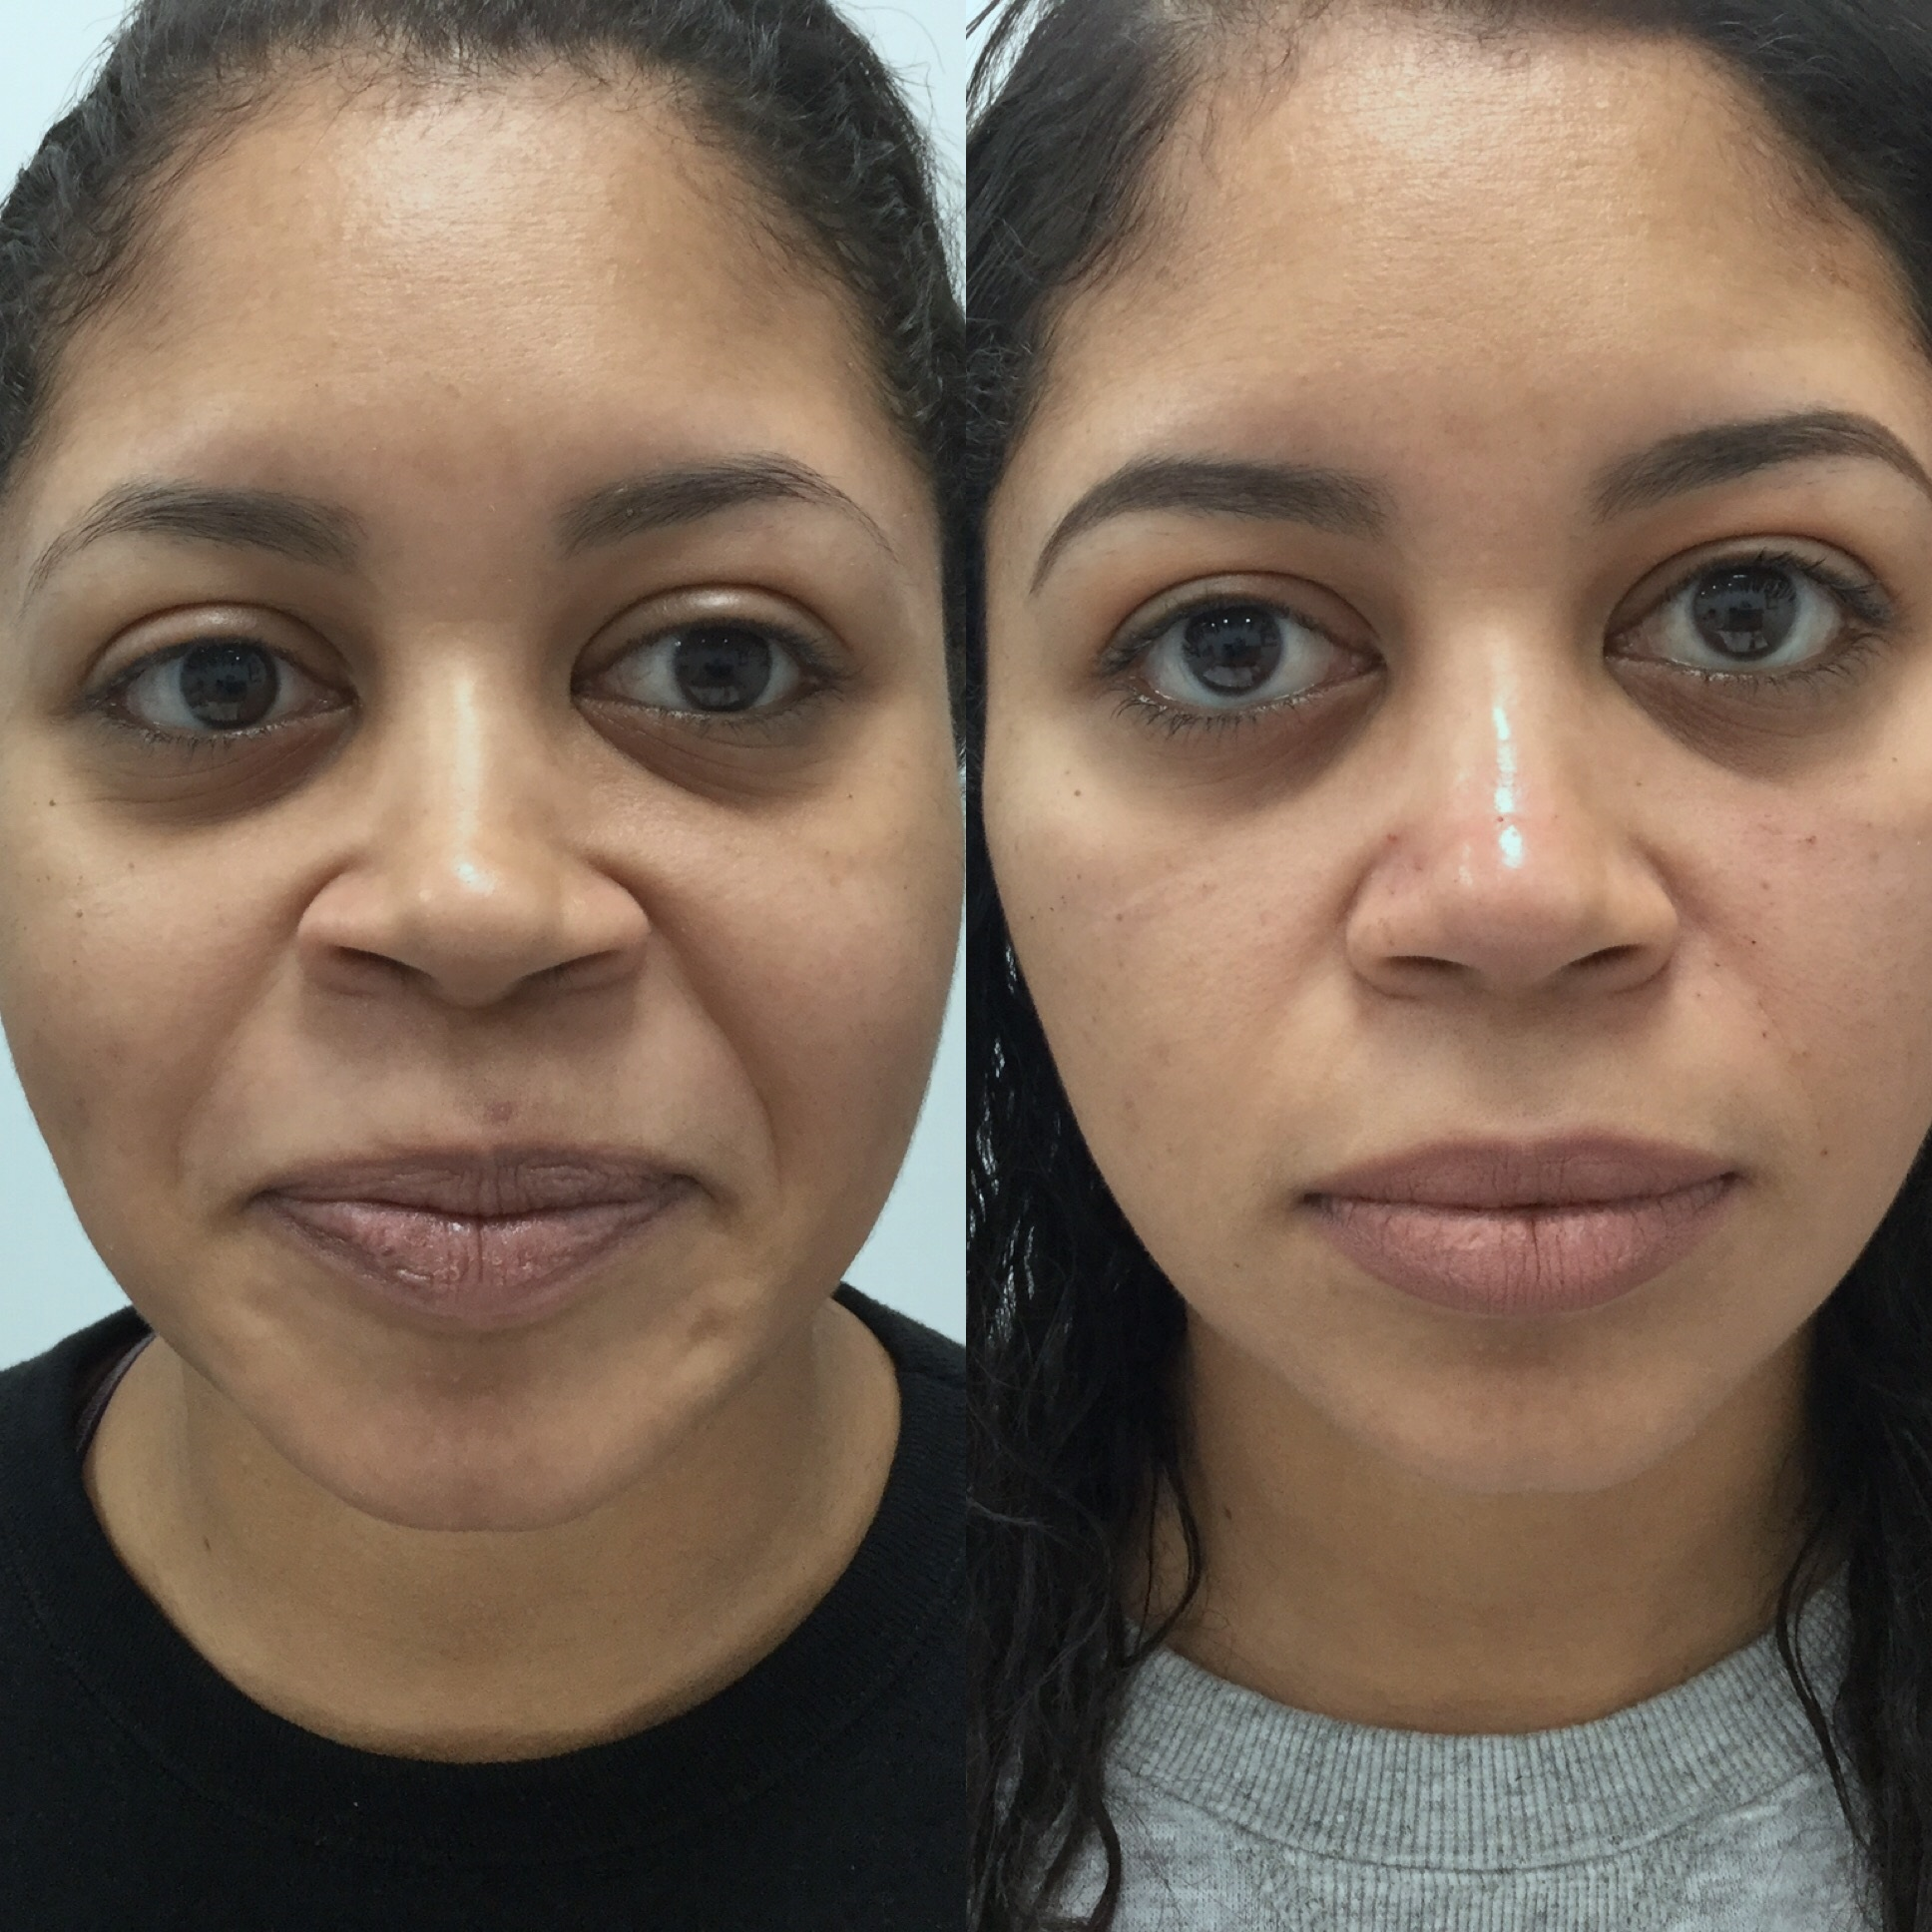 Nasolabial fold removal. Laugh line fill and lift with dermal filler.